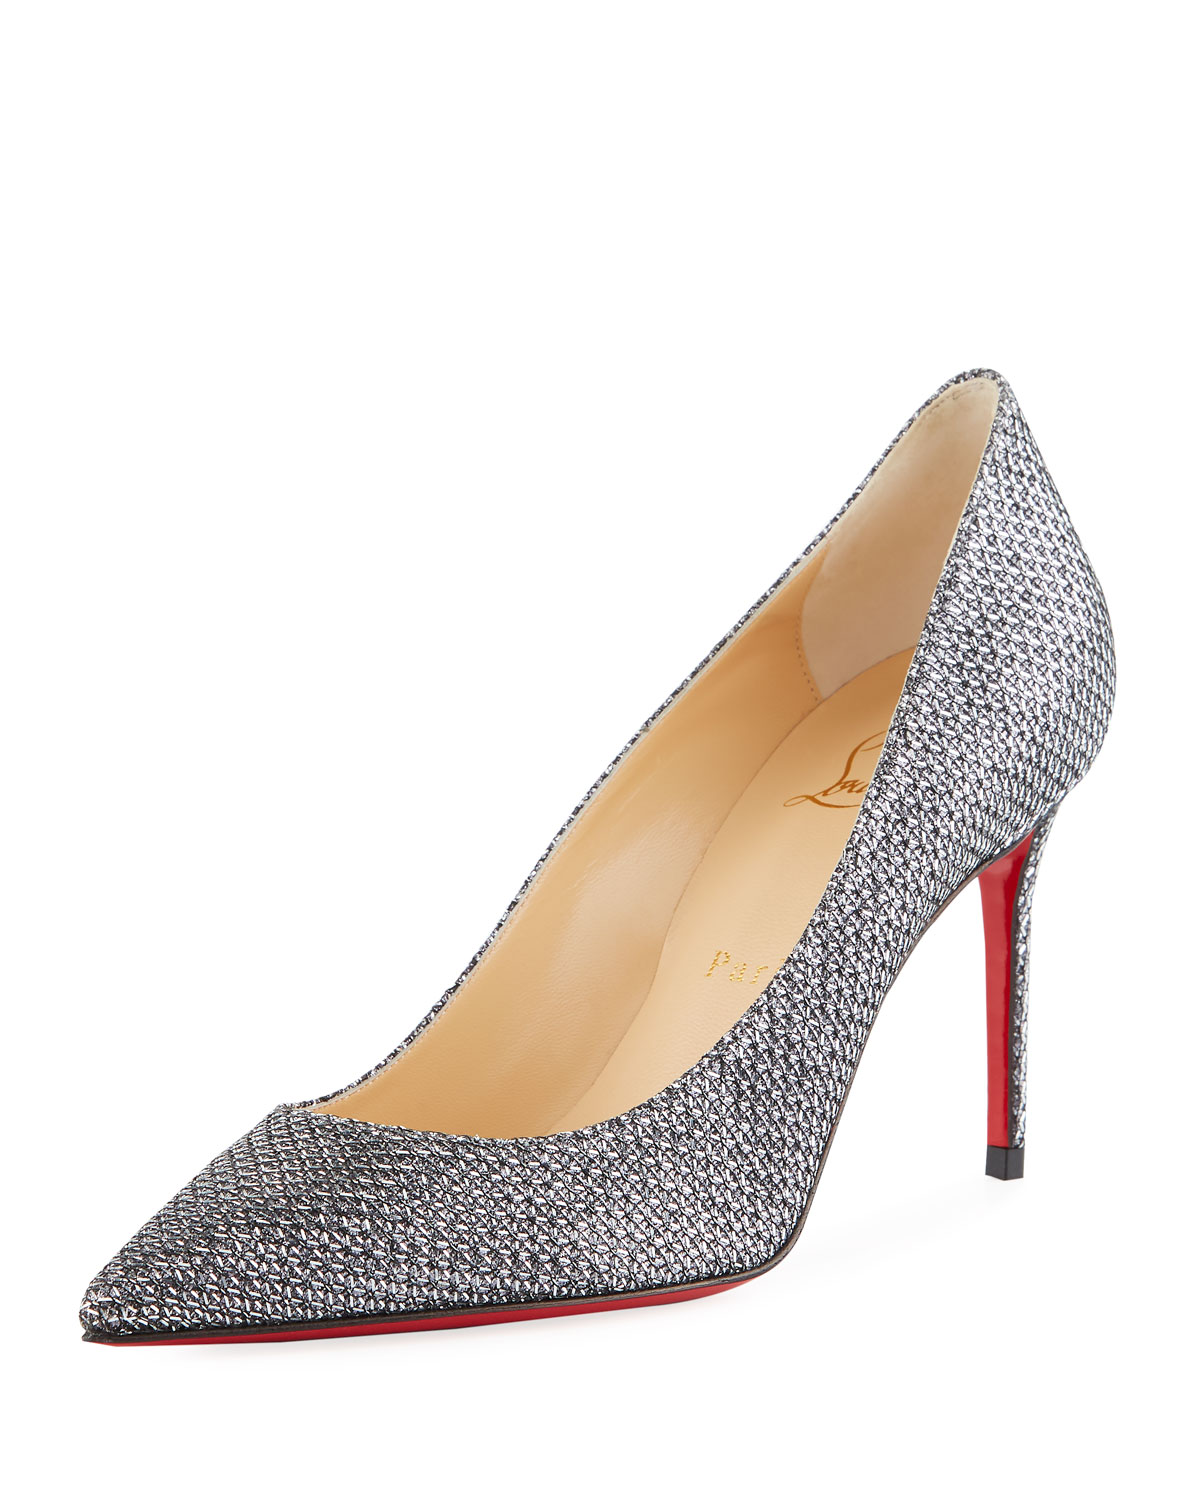 69f62d4d320a Christian LouboutinDecollete 554 Mid-Heel Metallic Fabric Red Sole Pumps